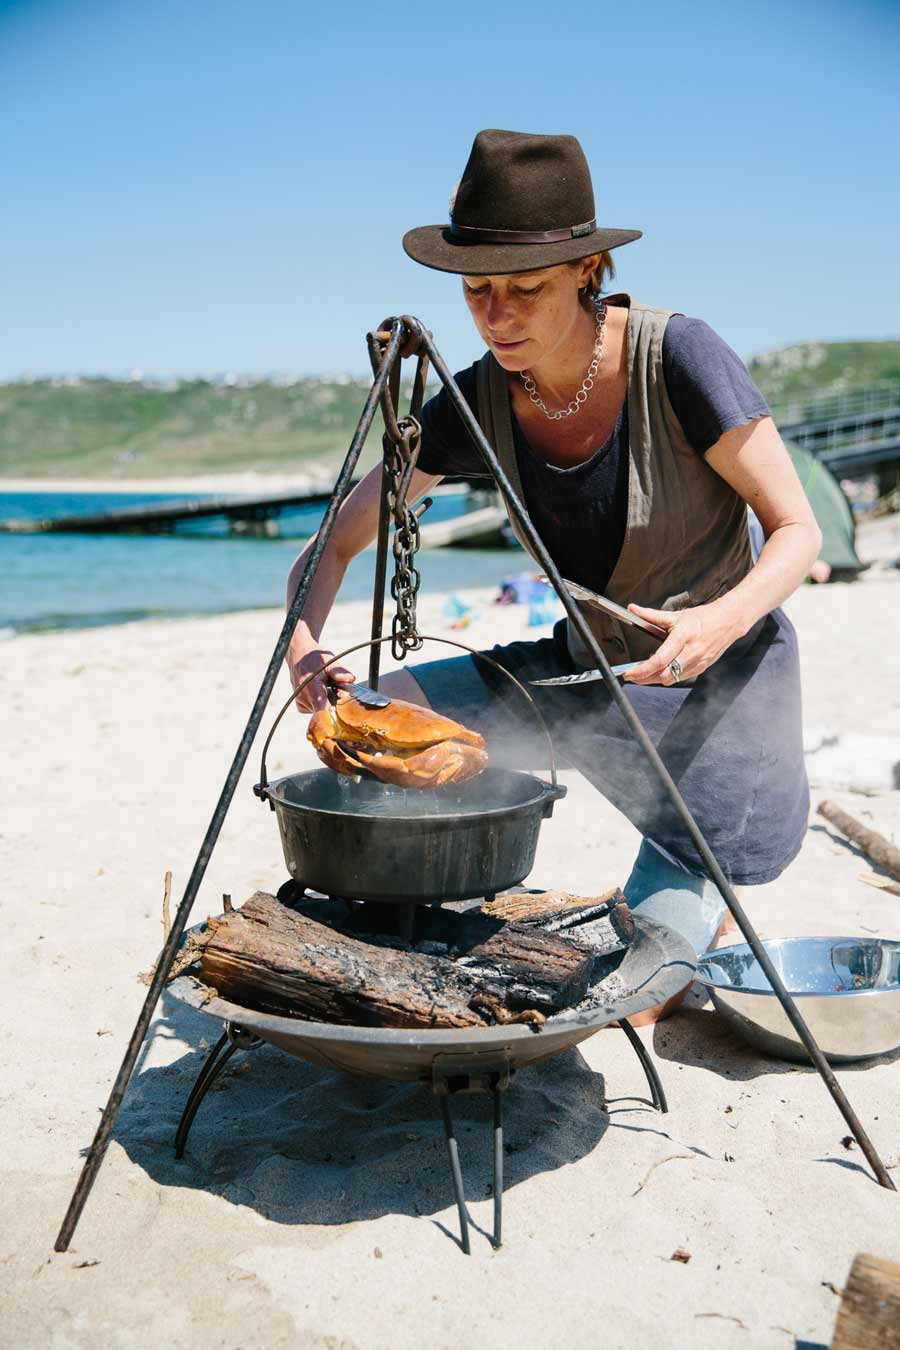 Photograph of Caroline Davey from Fat Hen cooking crab on the beach